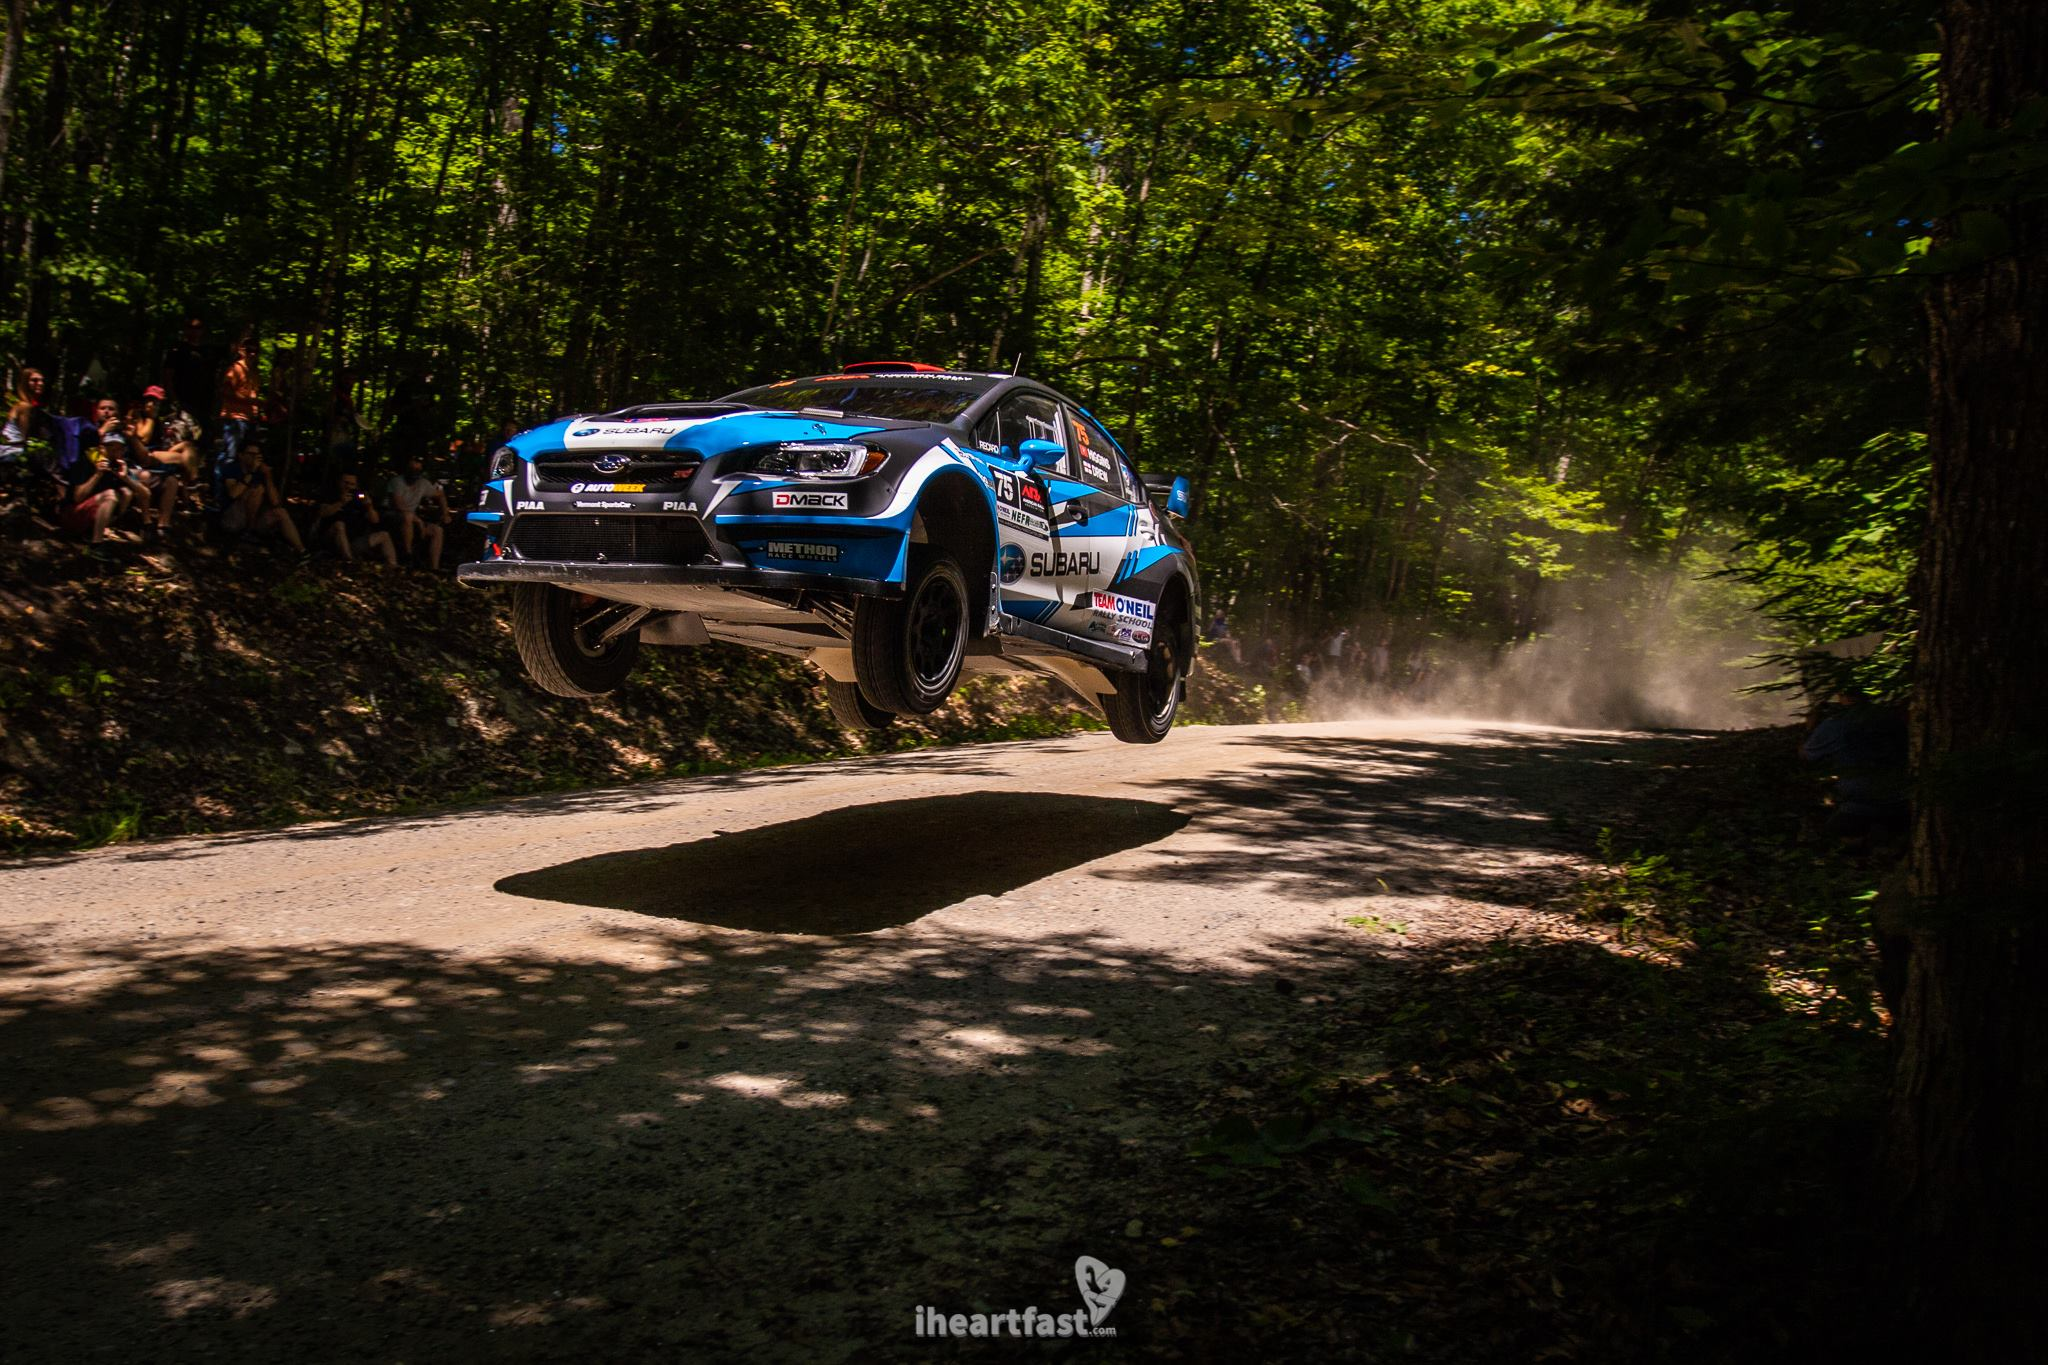 David Higgins and Craig Drew of Subaru Rally Team fly to victory at New England Forest Rally.